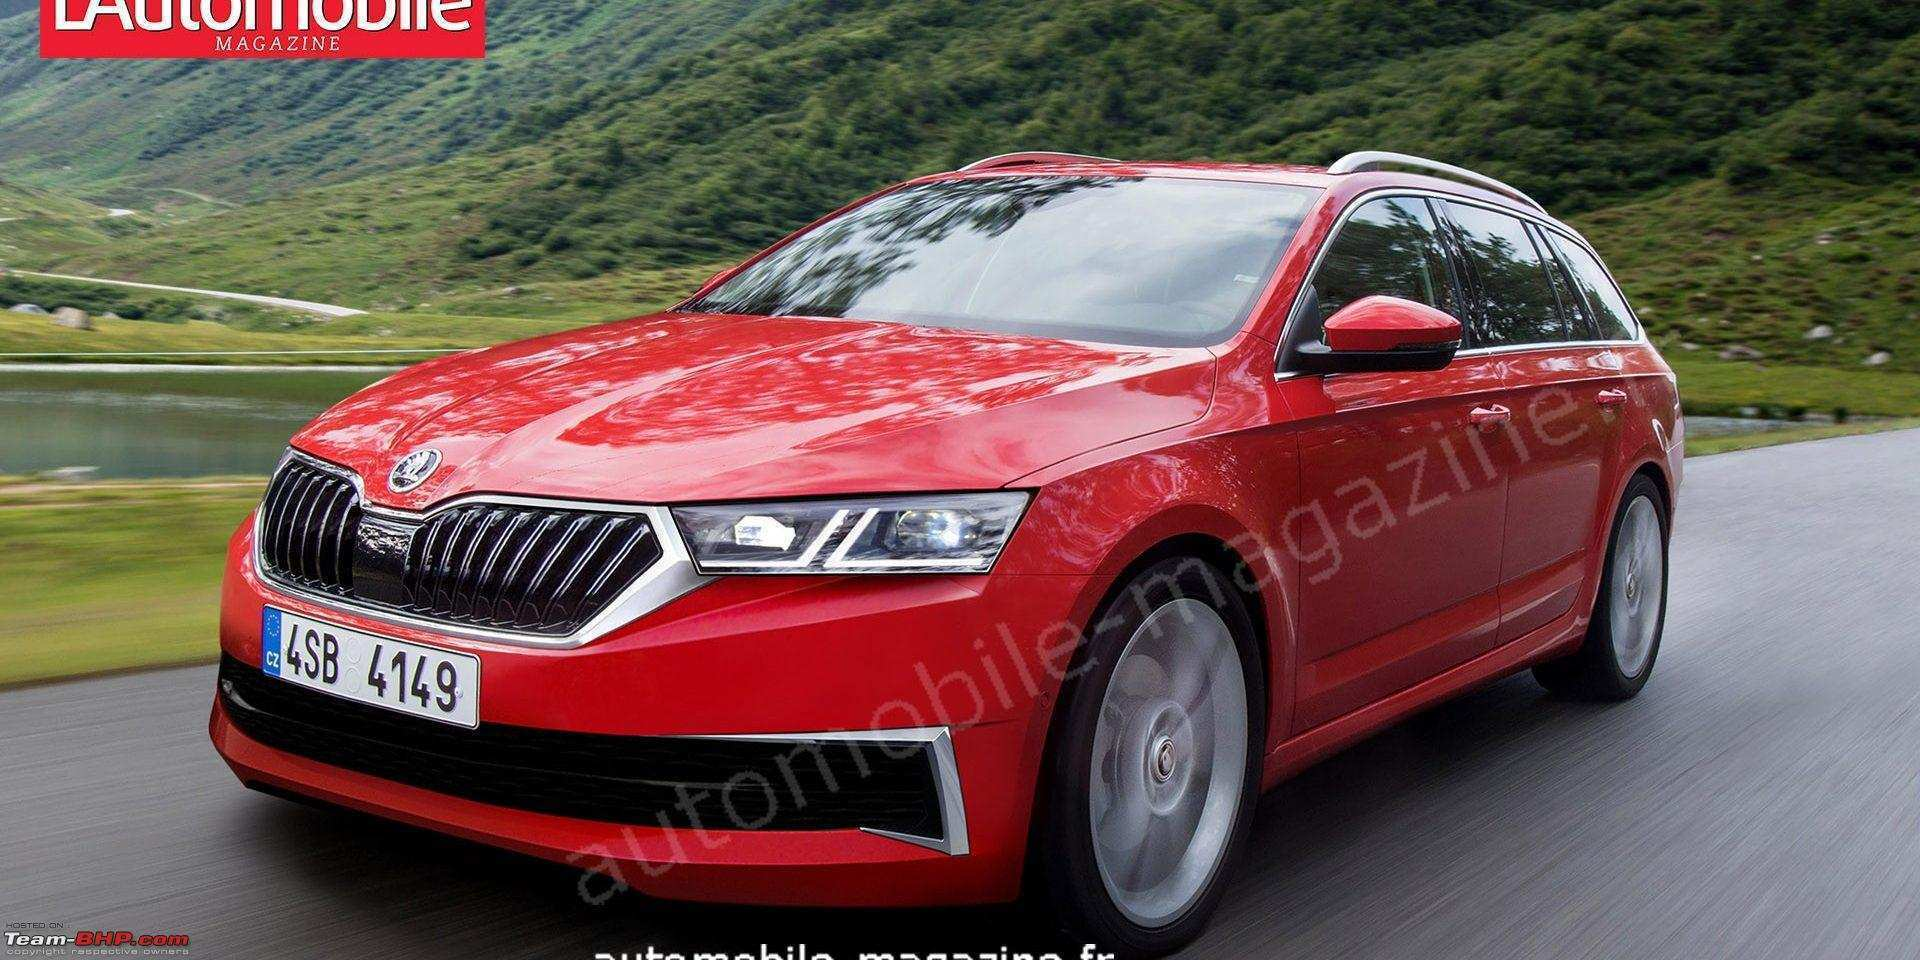 28 Great 2020 Skoda Octavias Picture for 2020 Skoda Octavias